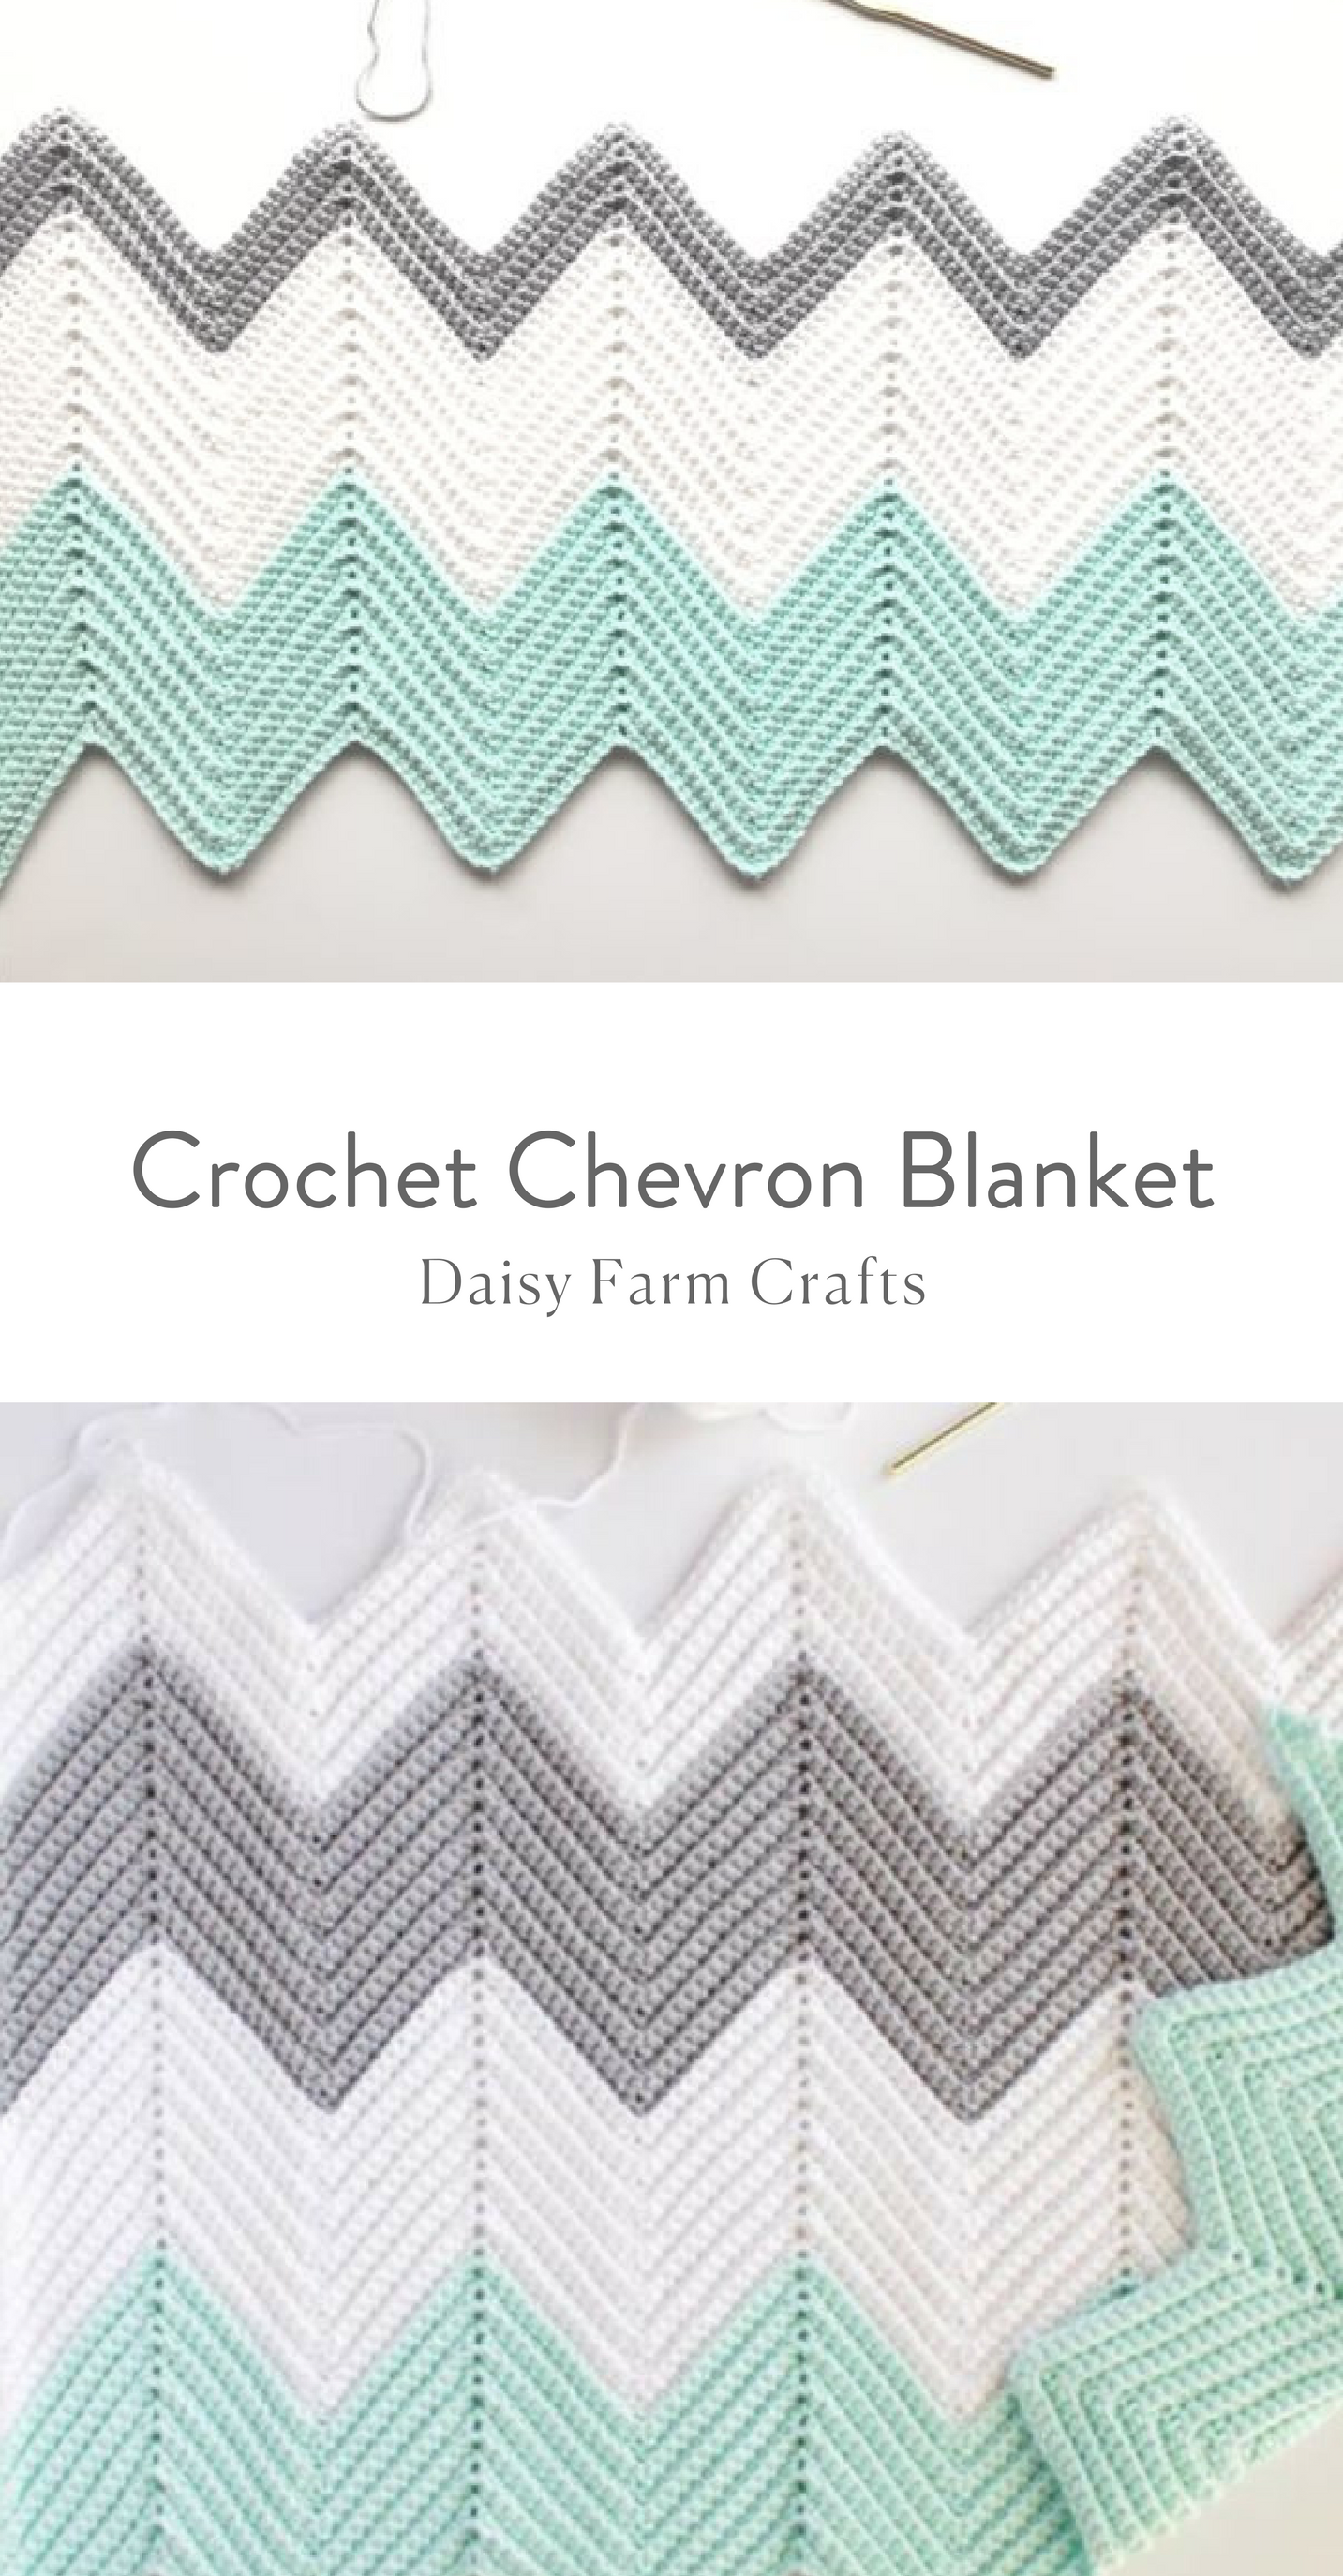 Free Pattern - Crochet Chevron Blanket | Crochet patterns ...